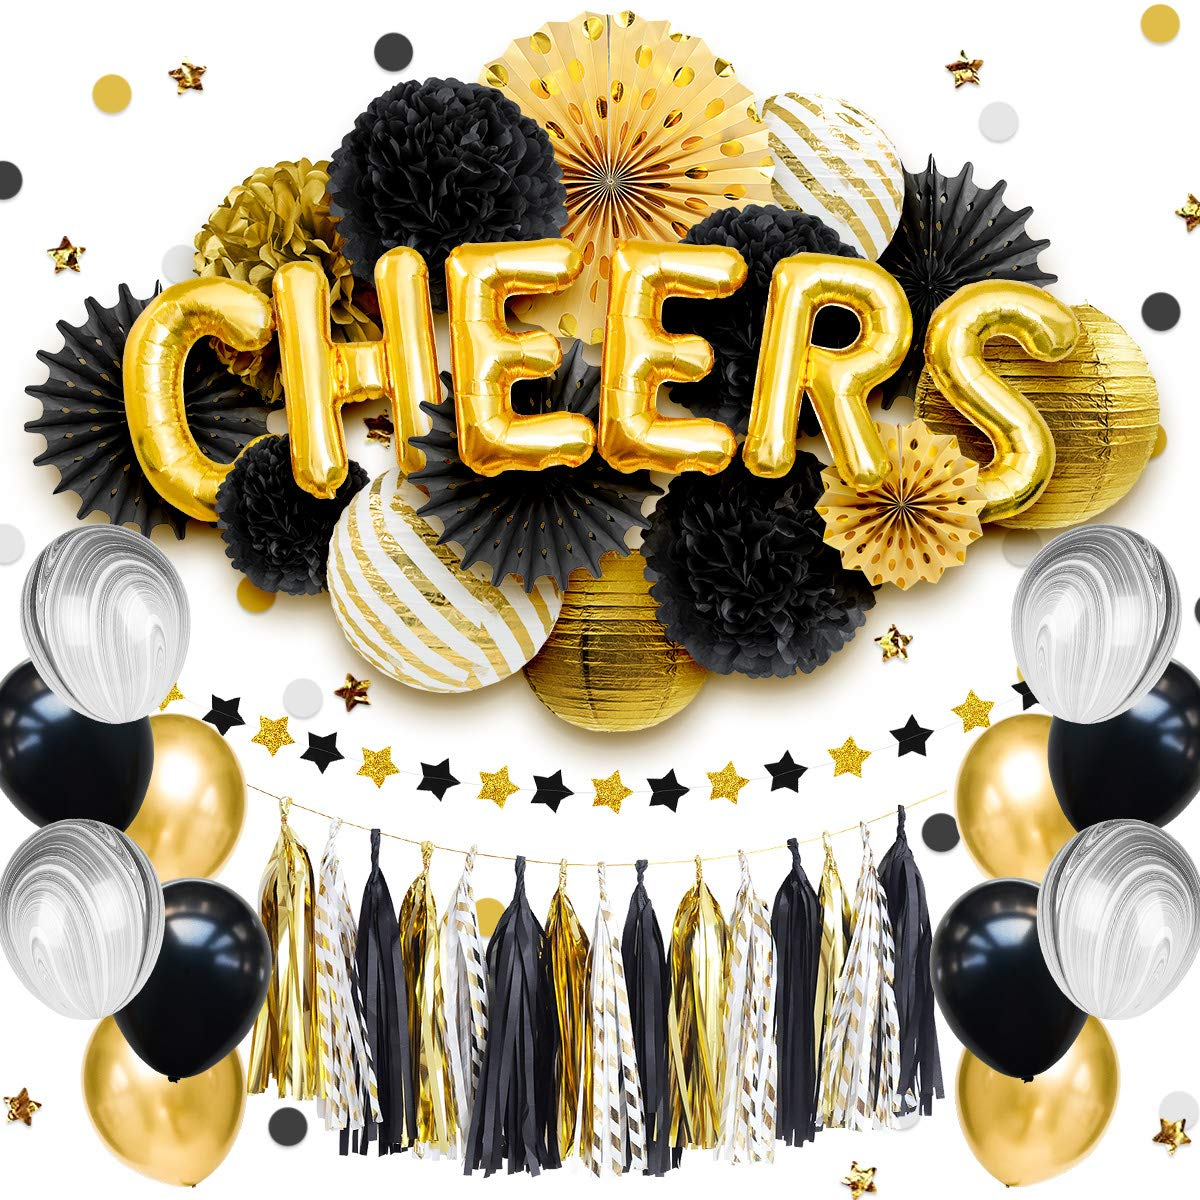 NICROLANDEE Black and Gold Party Decorations - CHEERS Foil Letter Balloon Tissue Pom Poms Gold White Stripe Lanterns Hollow Paper Fans Tassel Garland for Cheer to 21st 30th 40th 50th 60th Birthday